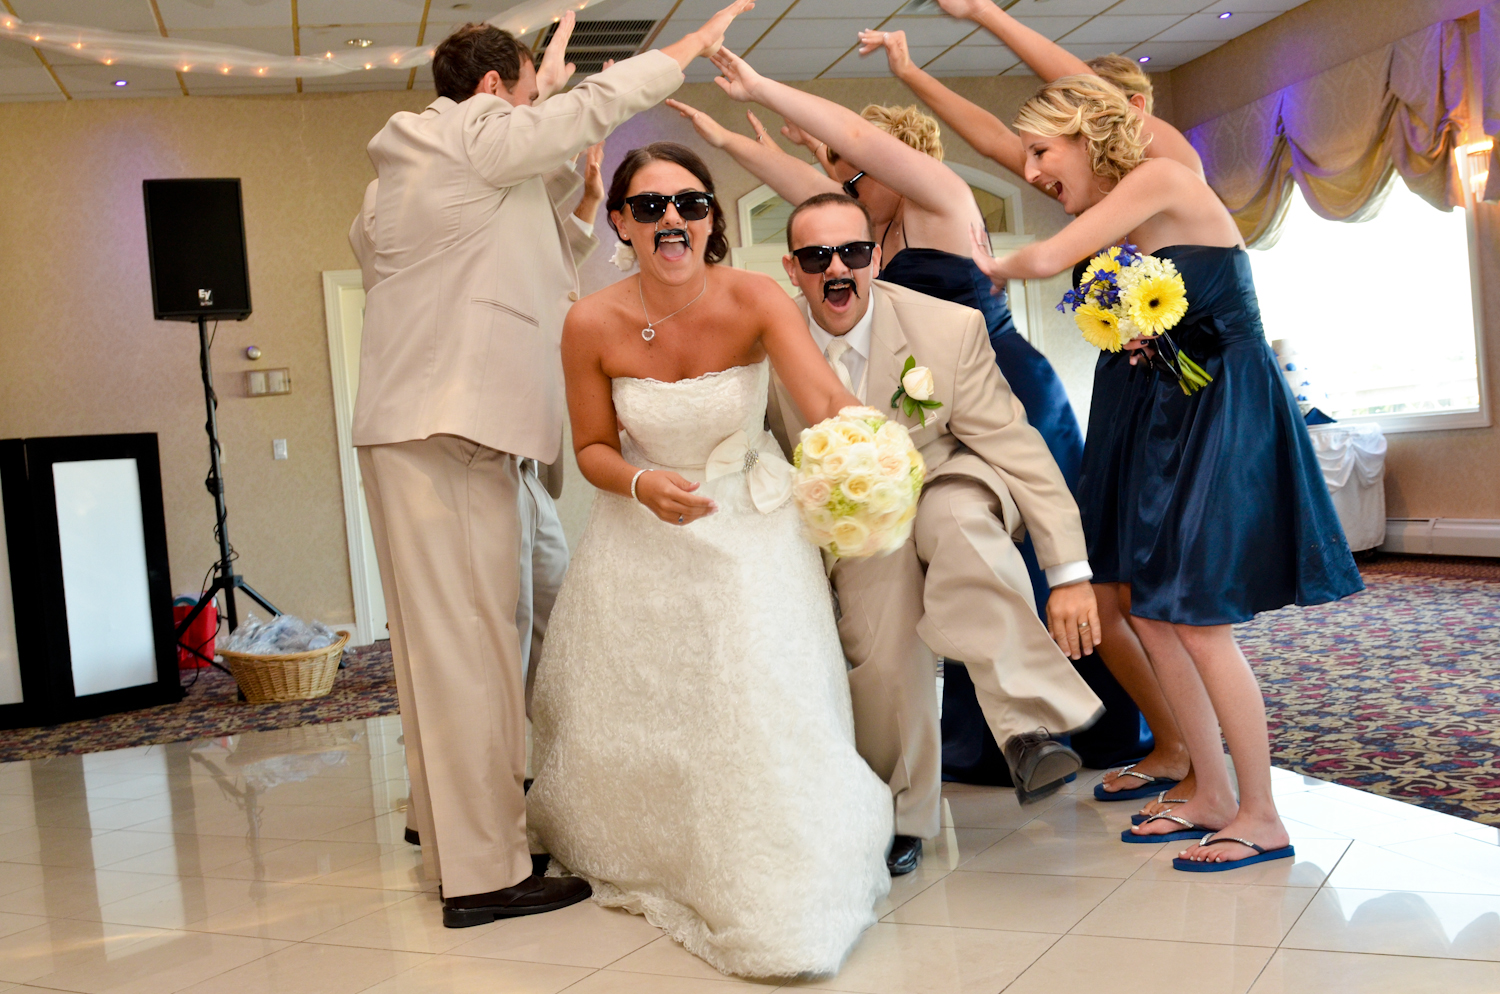 Top Wedding Party Entrance Songs For 2016